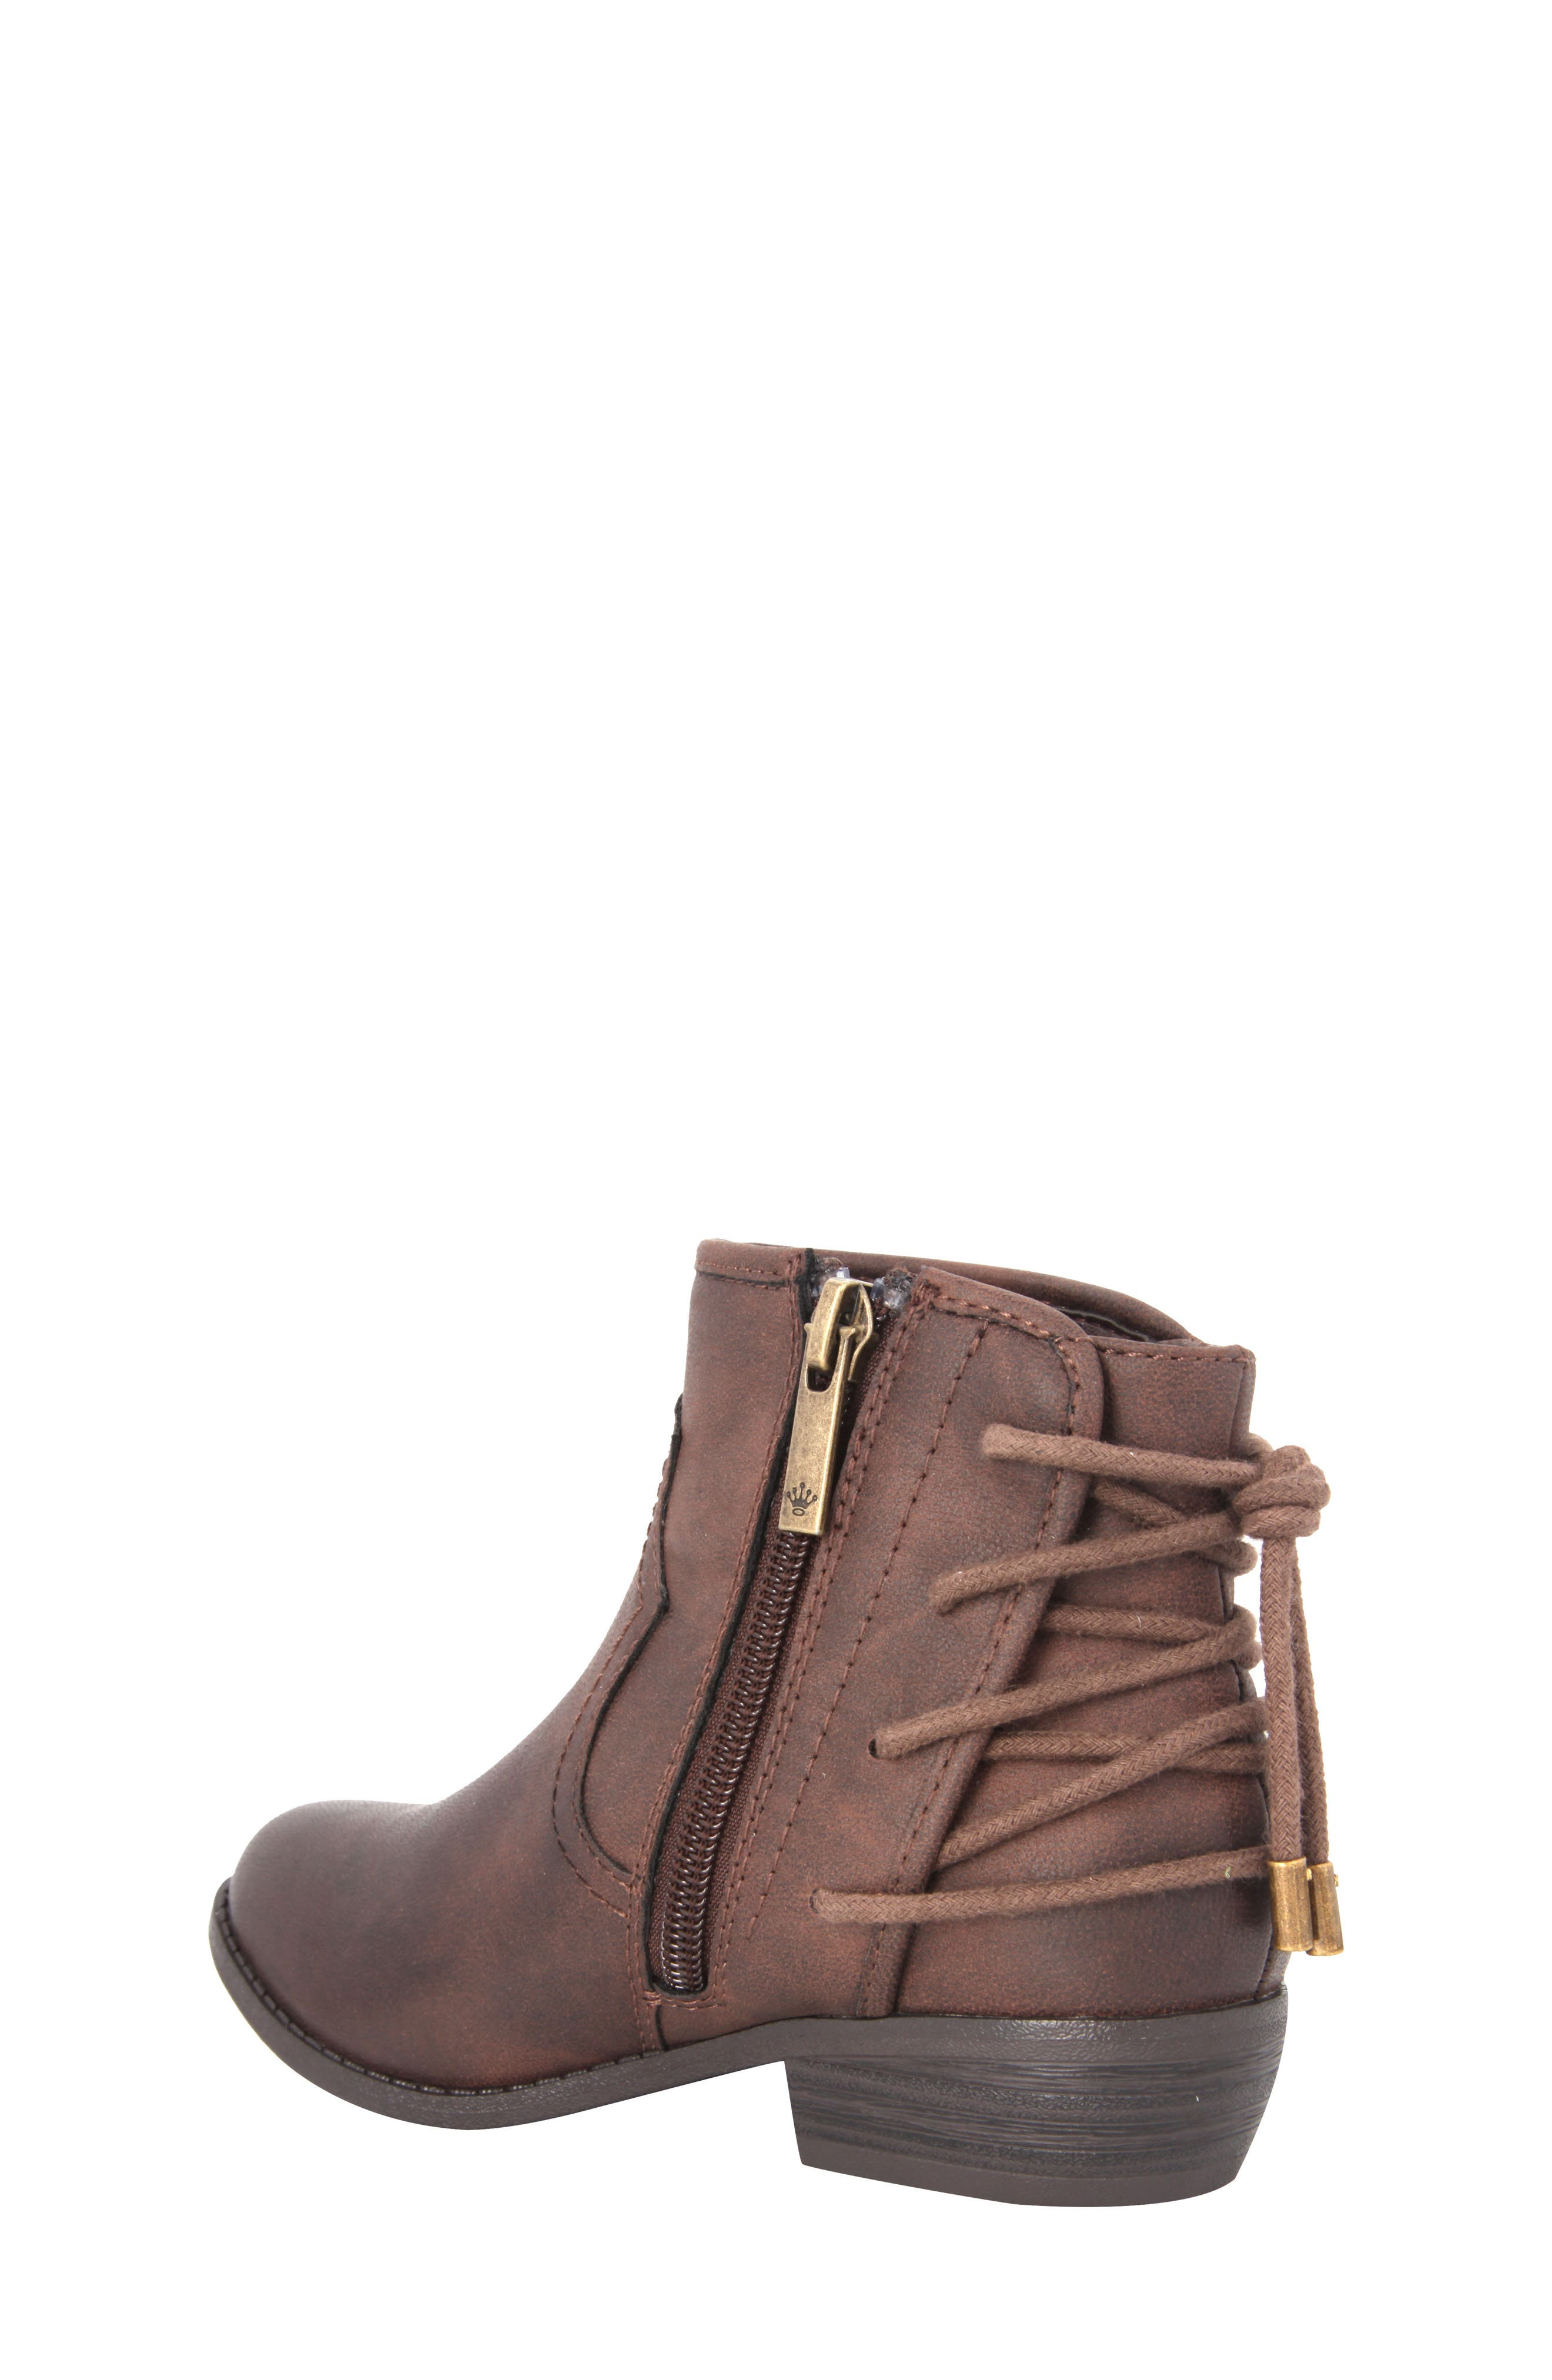 Evette Distressed Back-Lace Bootie,                             Alternate thumbnail 2, color,                             Brown Faux Leather